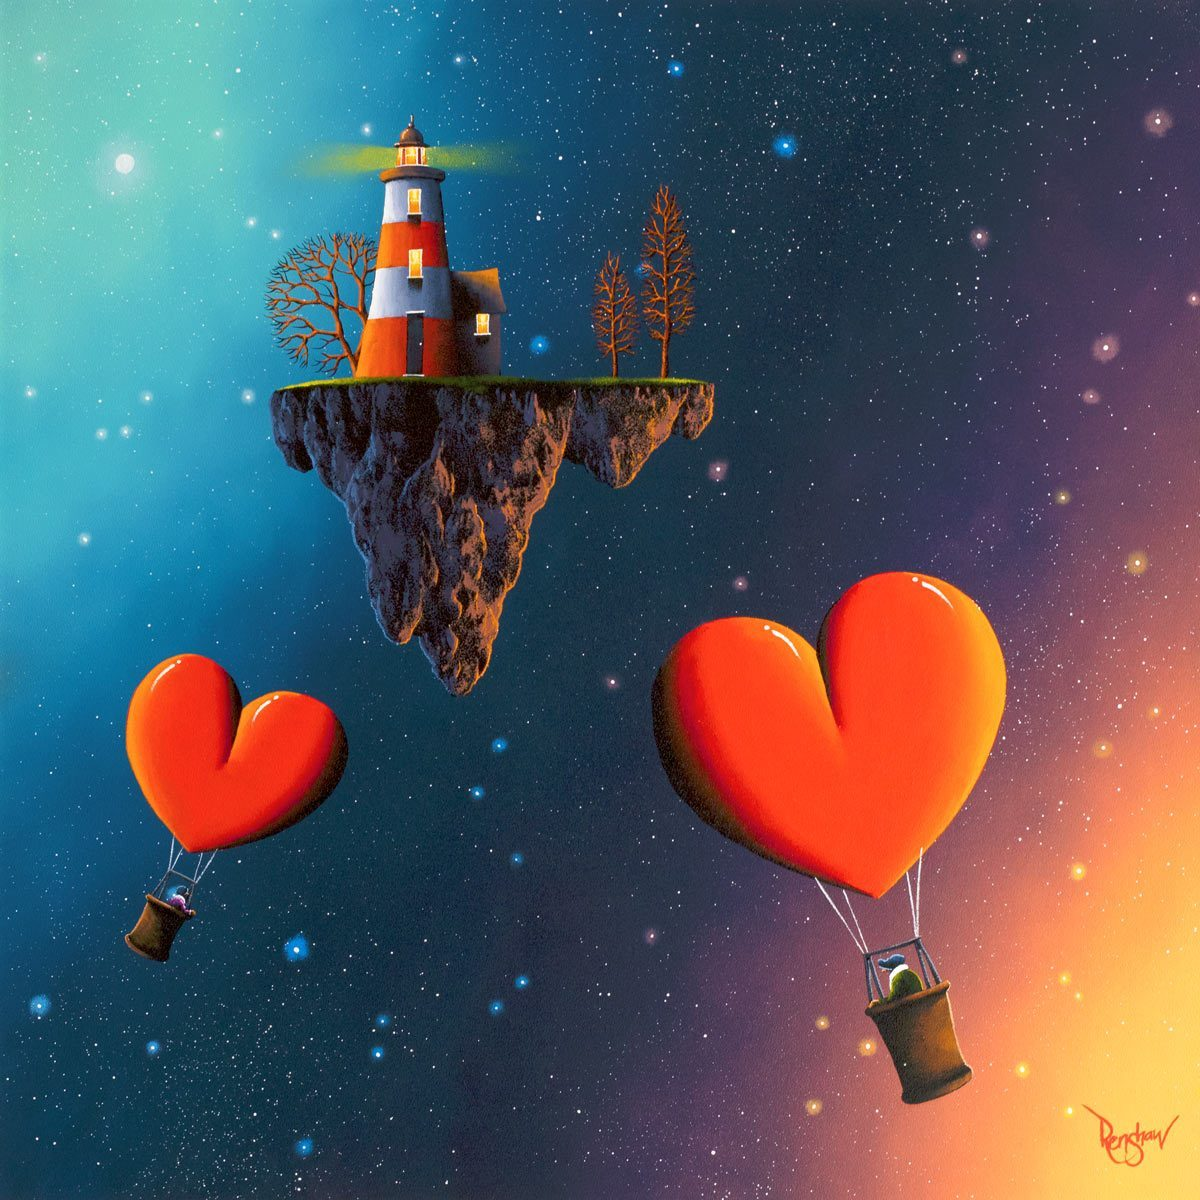 Home's Calling - Original David Renshaw